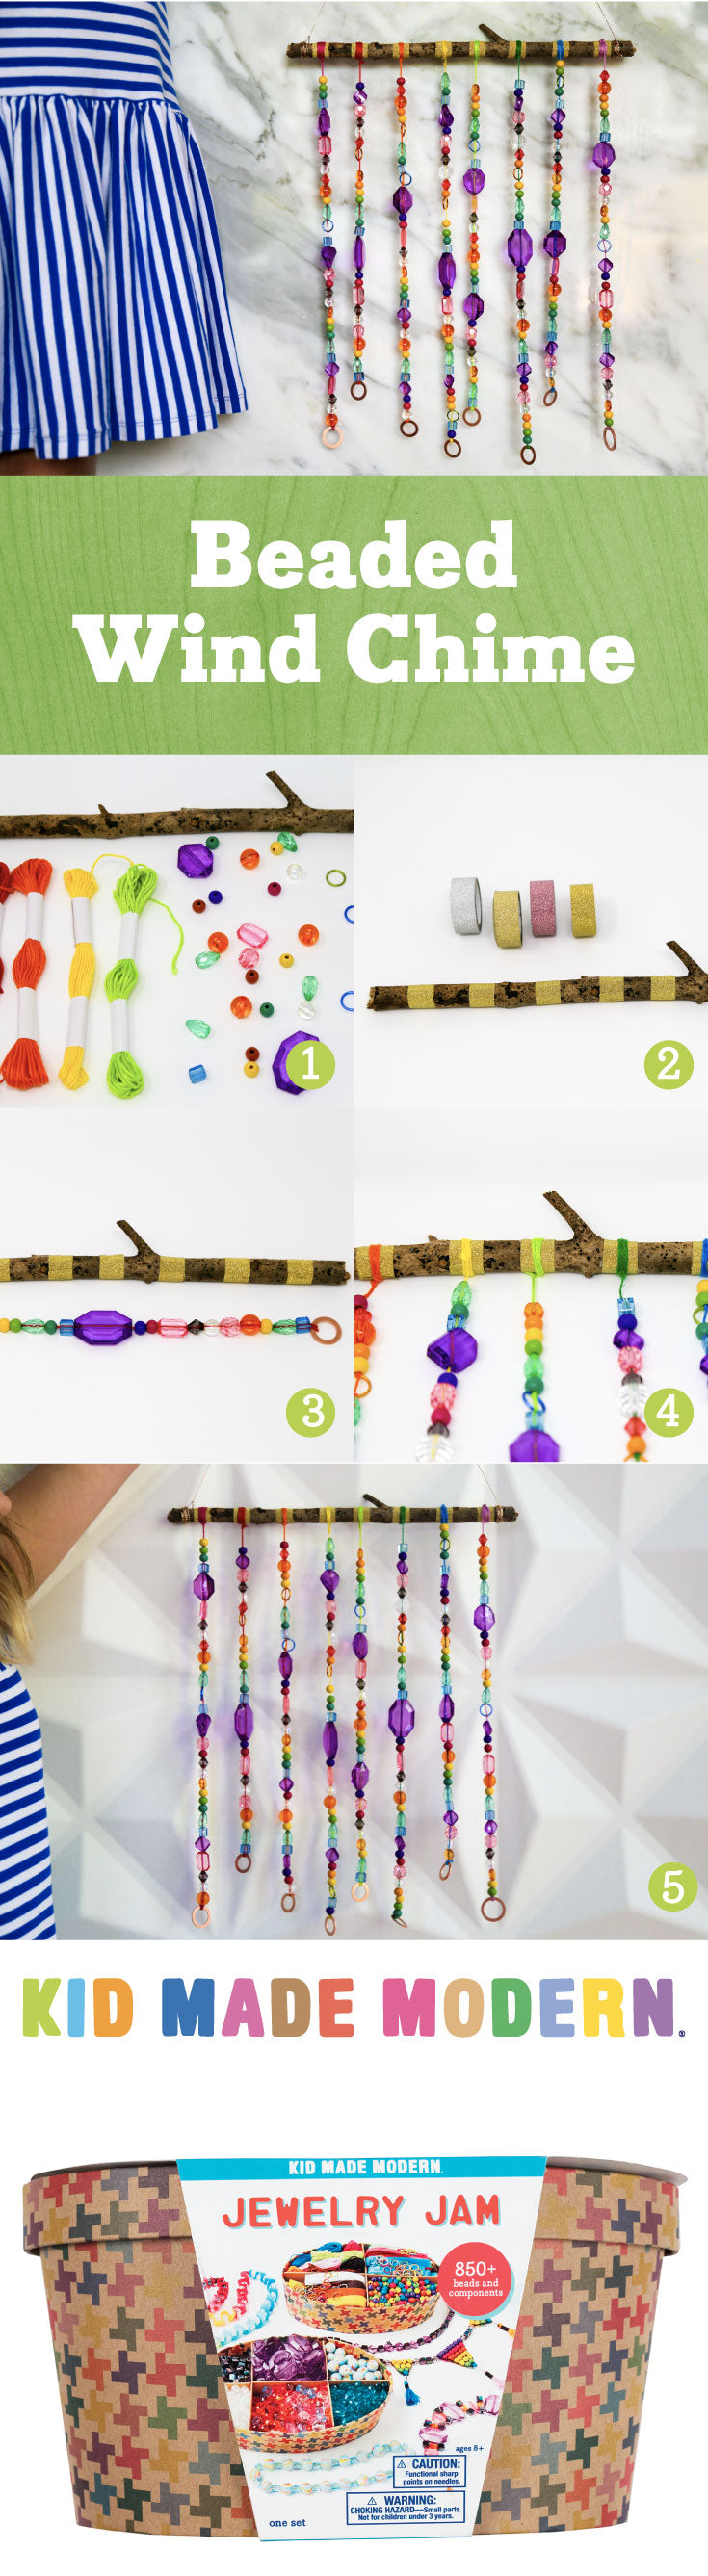 Beaded Wind Chime Pinterest